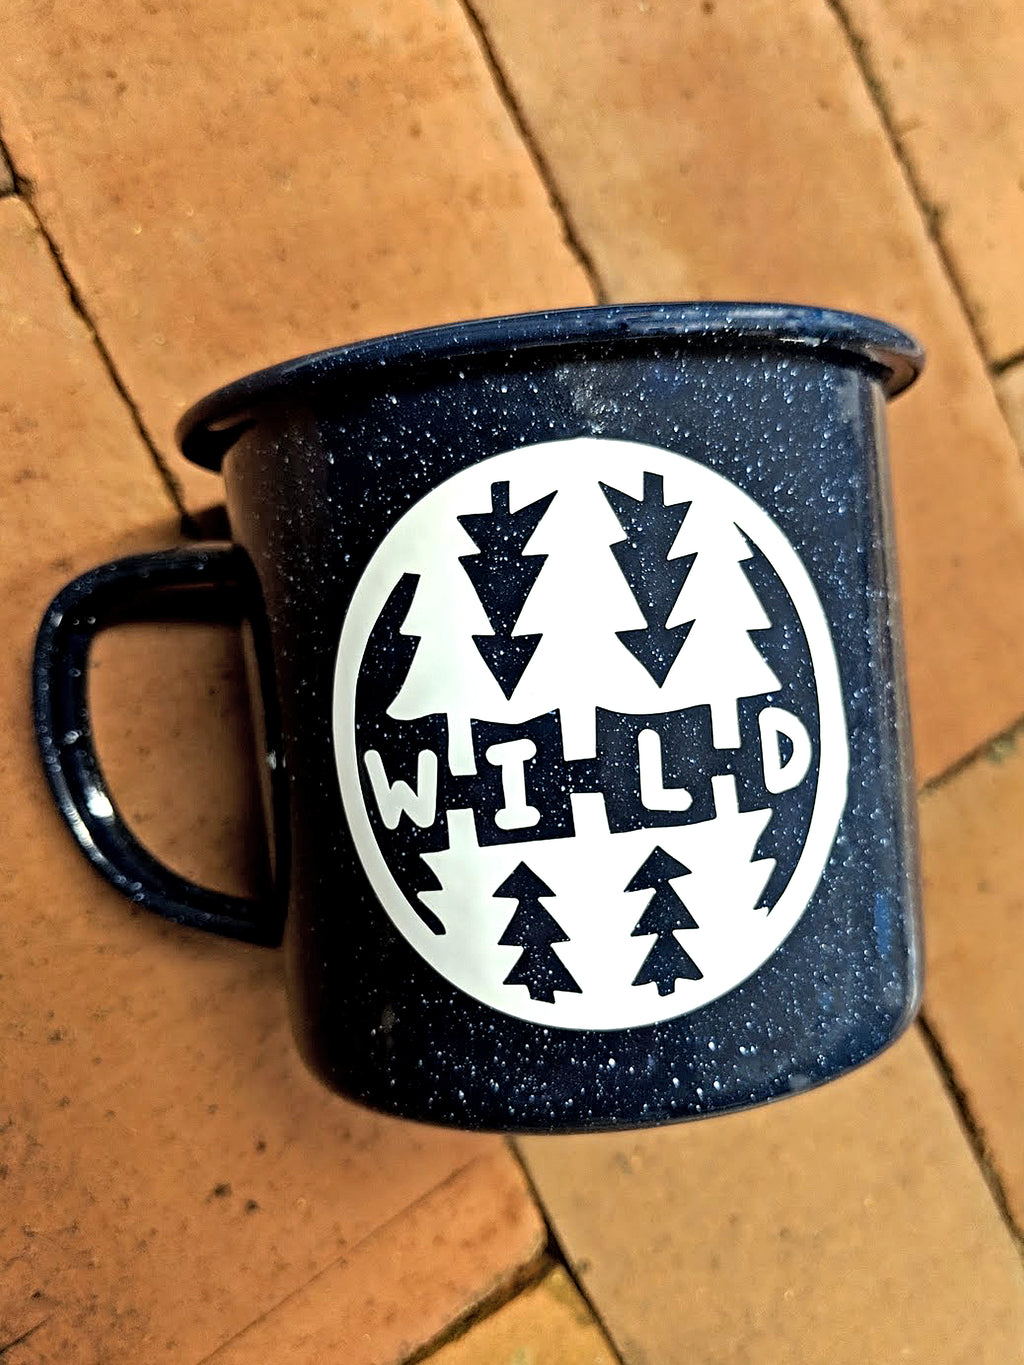 Large Speckled Wild Enamel Mug 16oz - Contour Creative